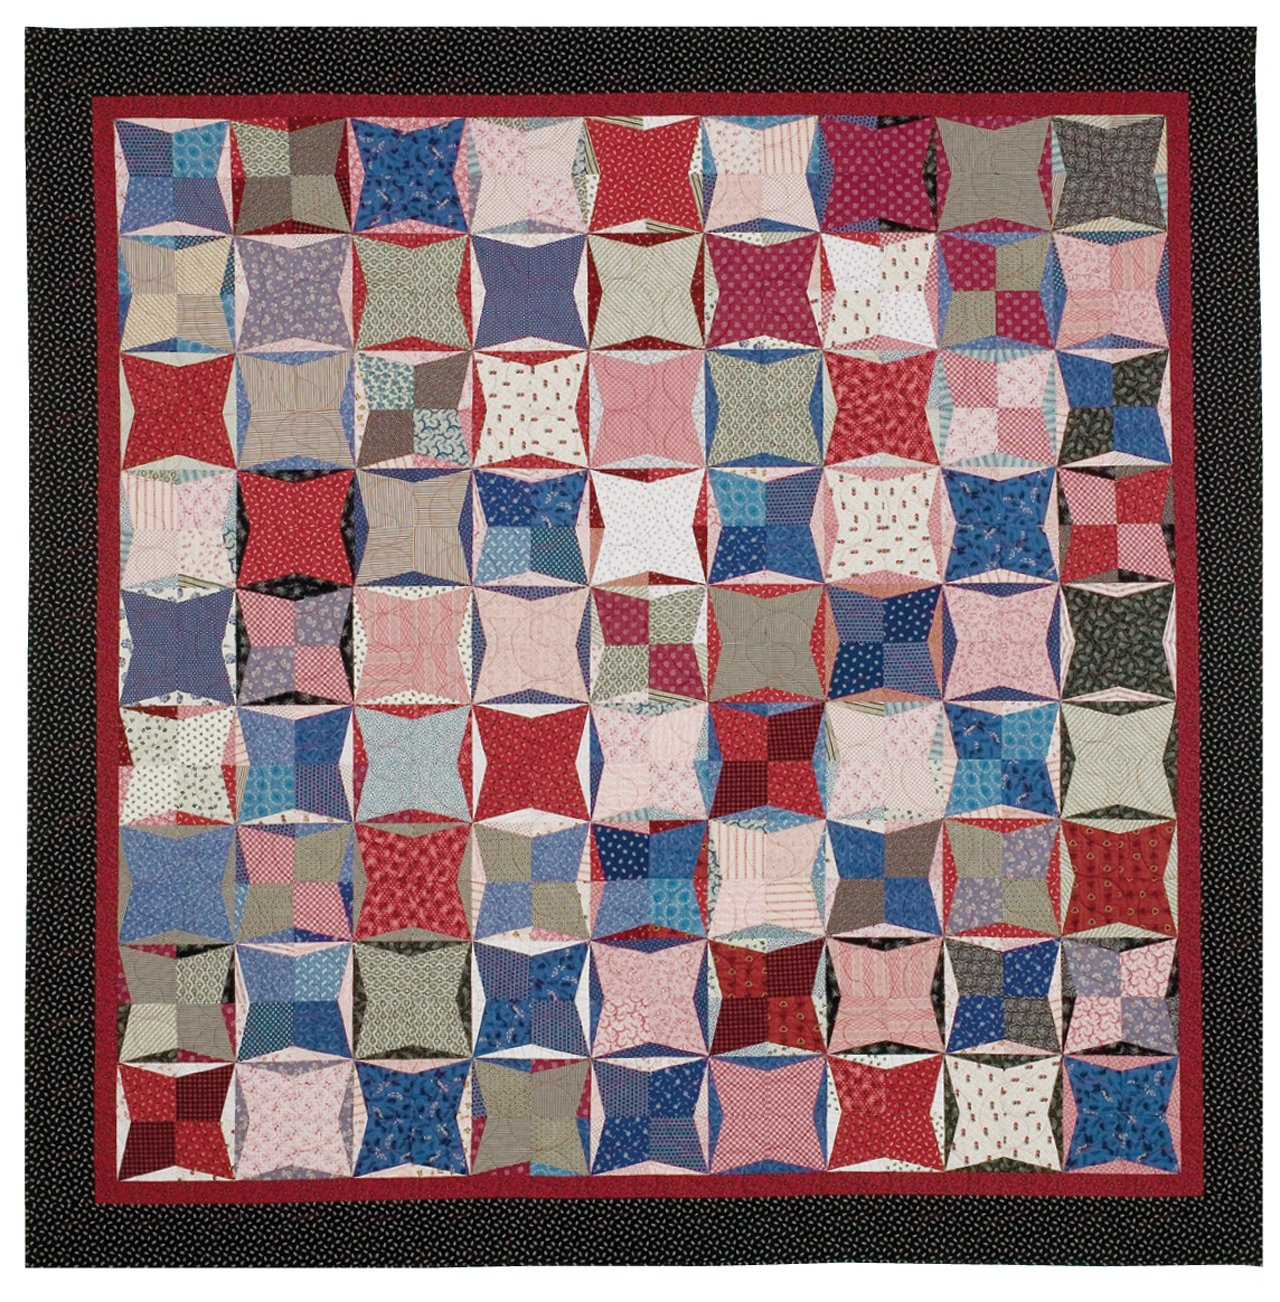 Easy Quilts for Beginners and Beyond: 14 Quilt Patterns from Quiltmaker Magazine by That Patchwork Place (Image #15)